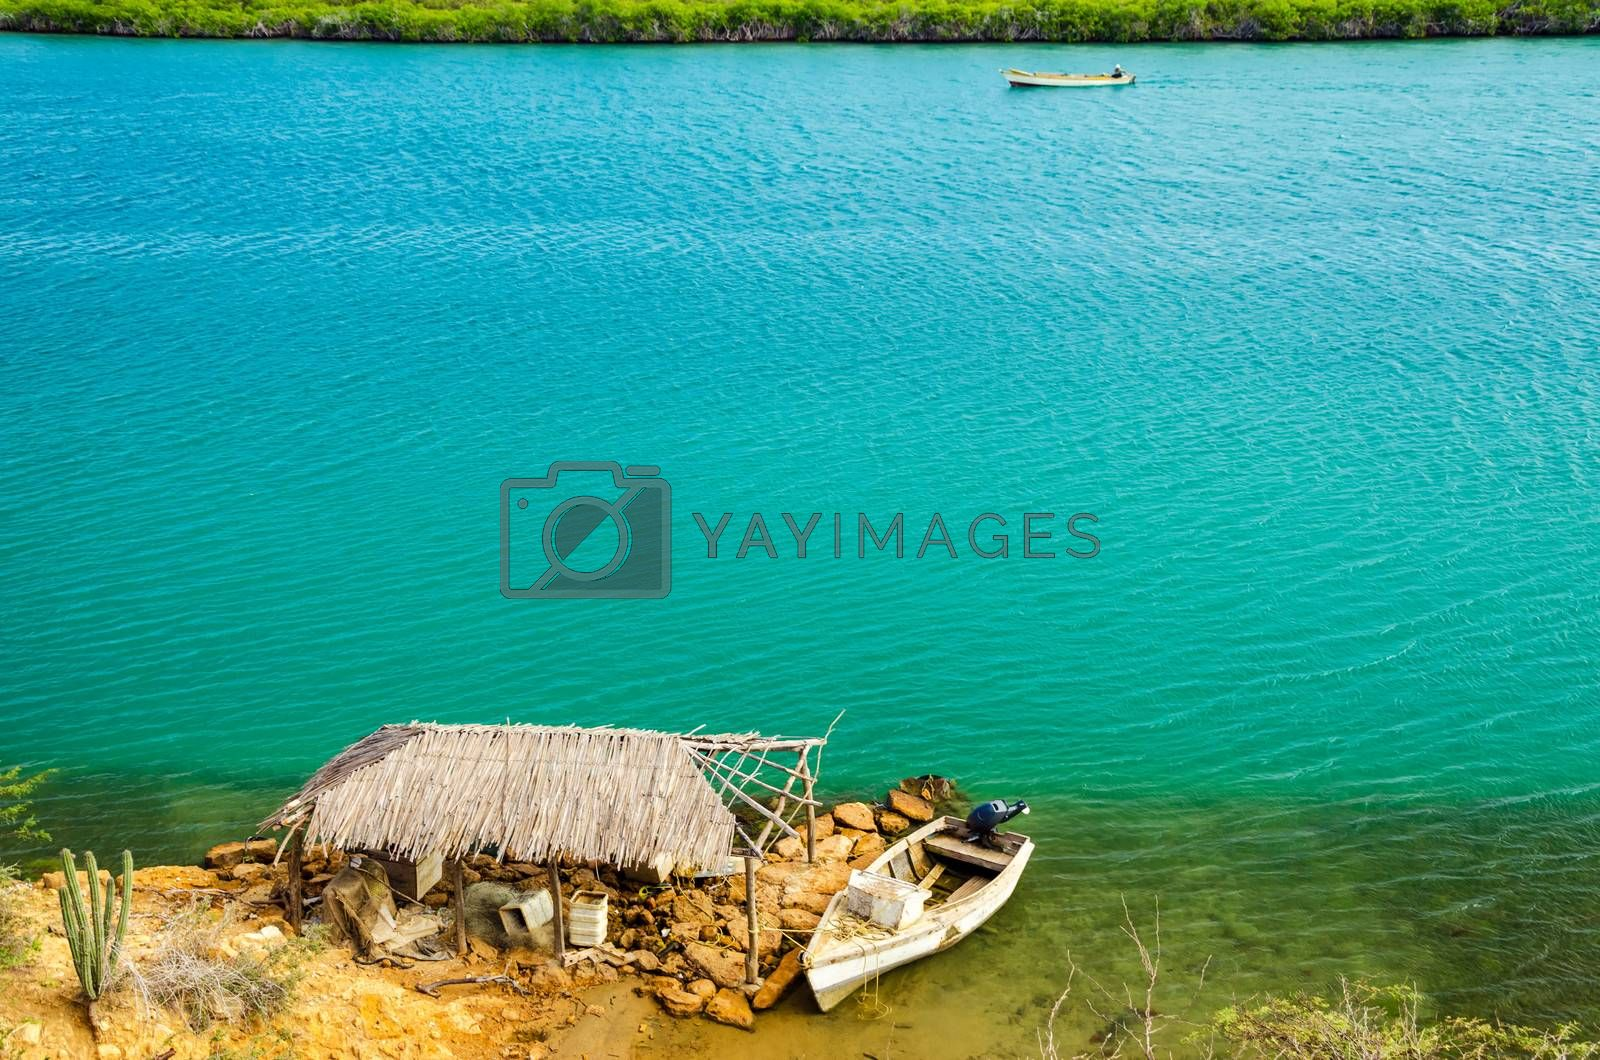 Inlet to a bay passing by a dilapidated shack near Punta Gallinas in La Guajira, Colombia